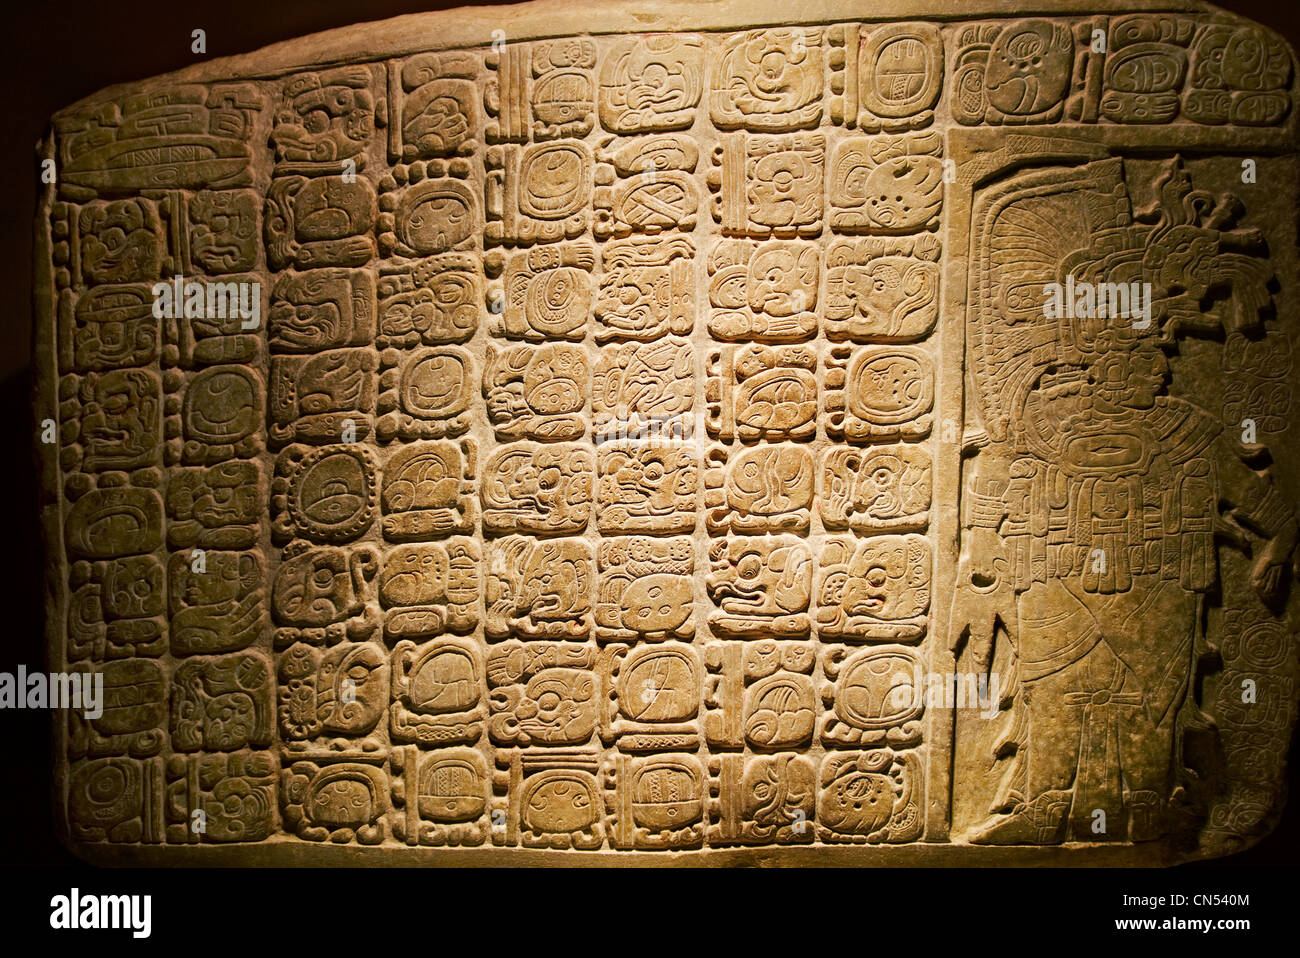 A Mayan stelae from the site of La Corona on display in Guatemala City's National Archaeology Museum. - Stock Image